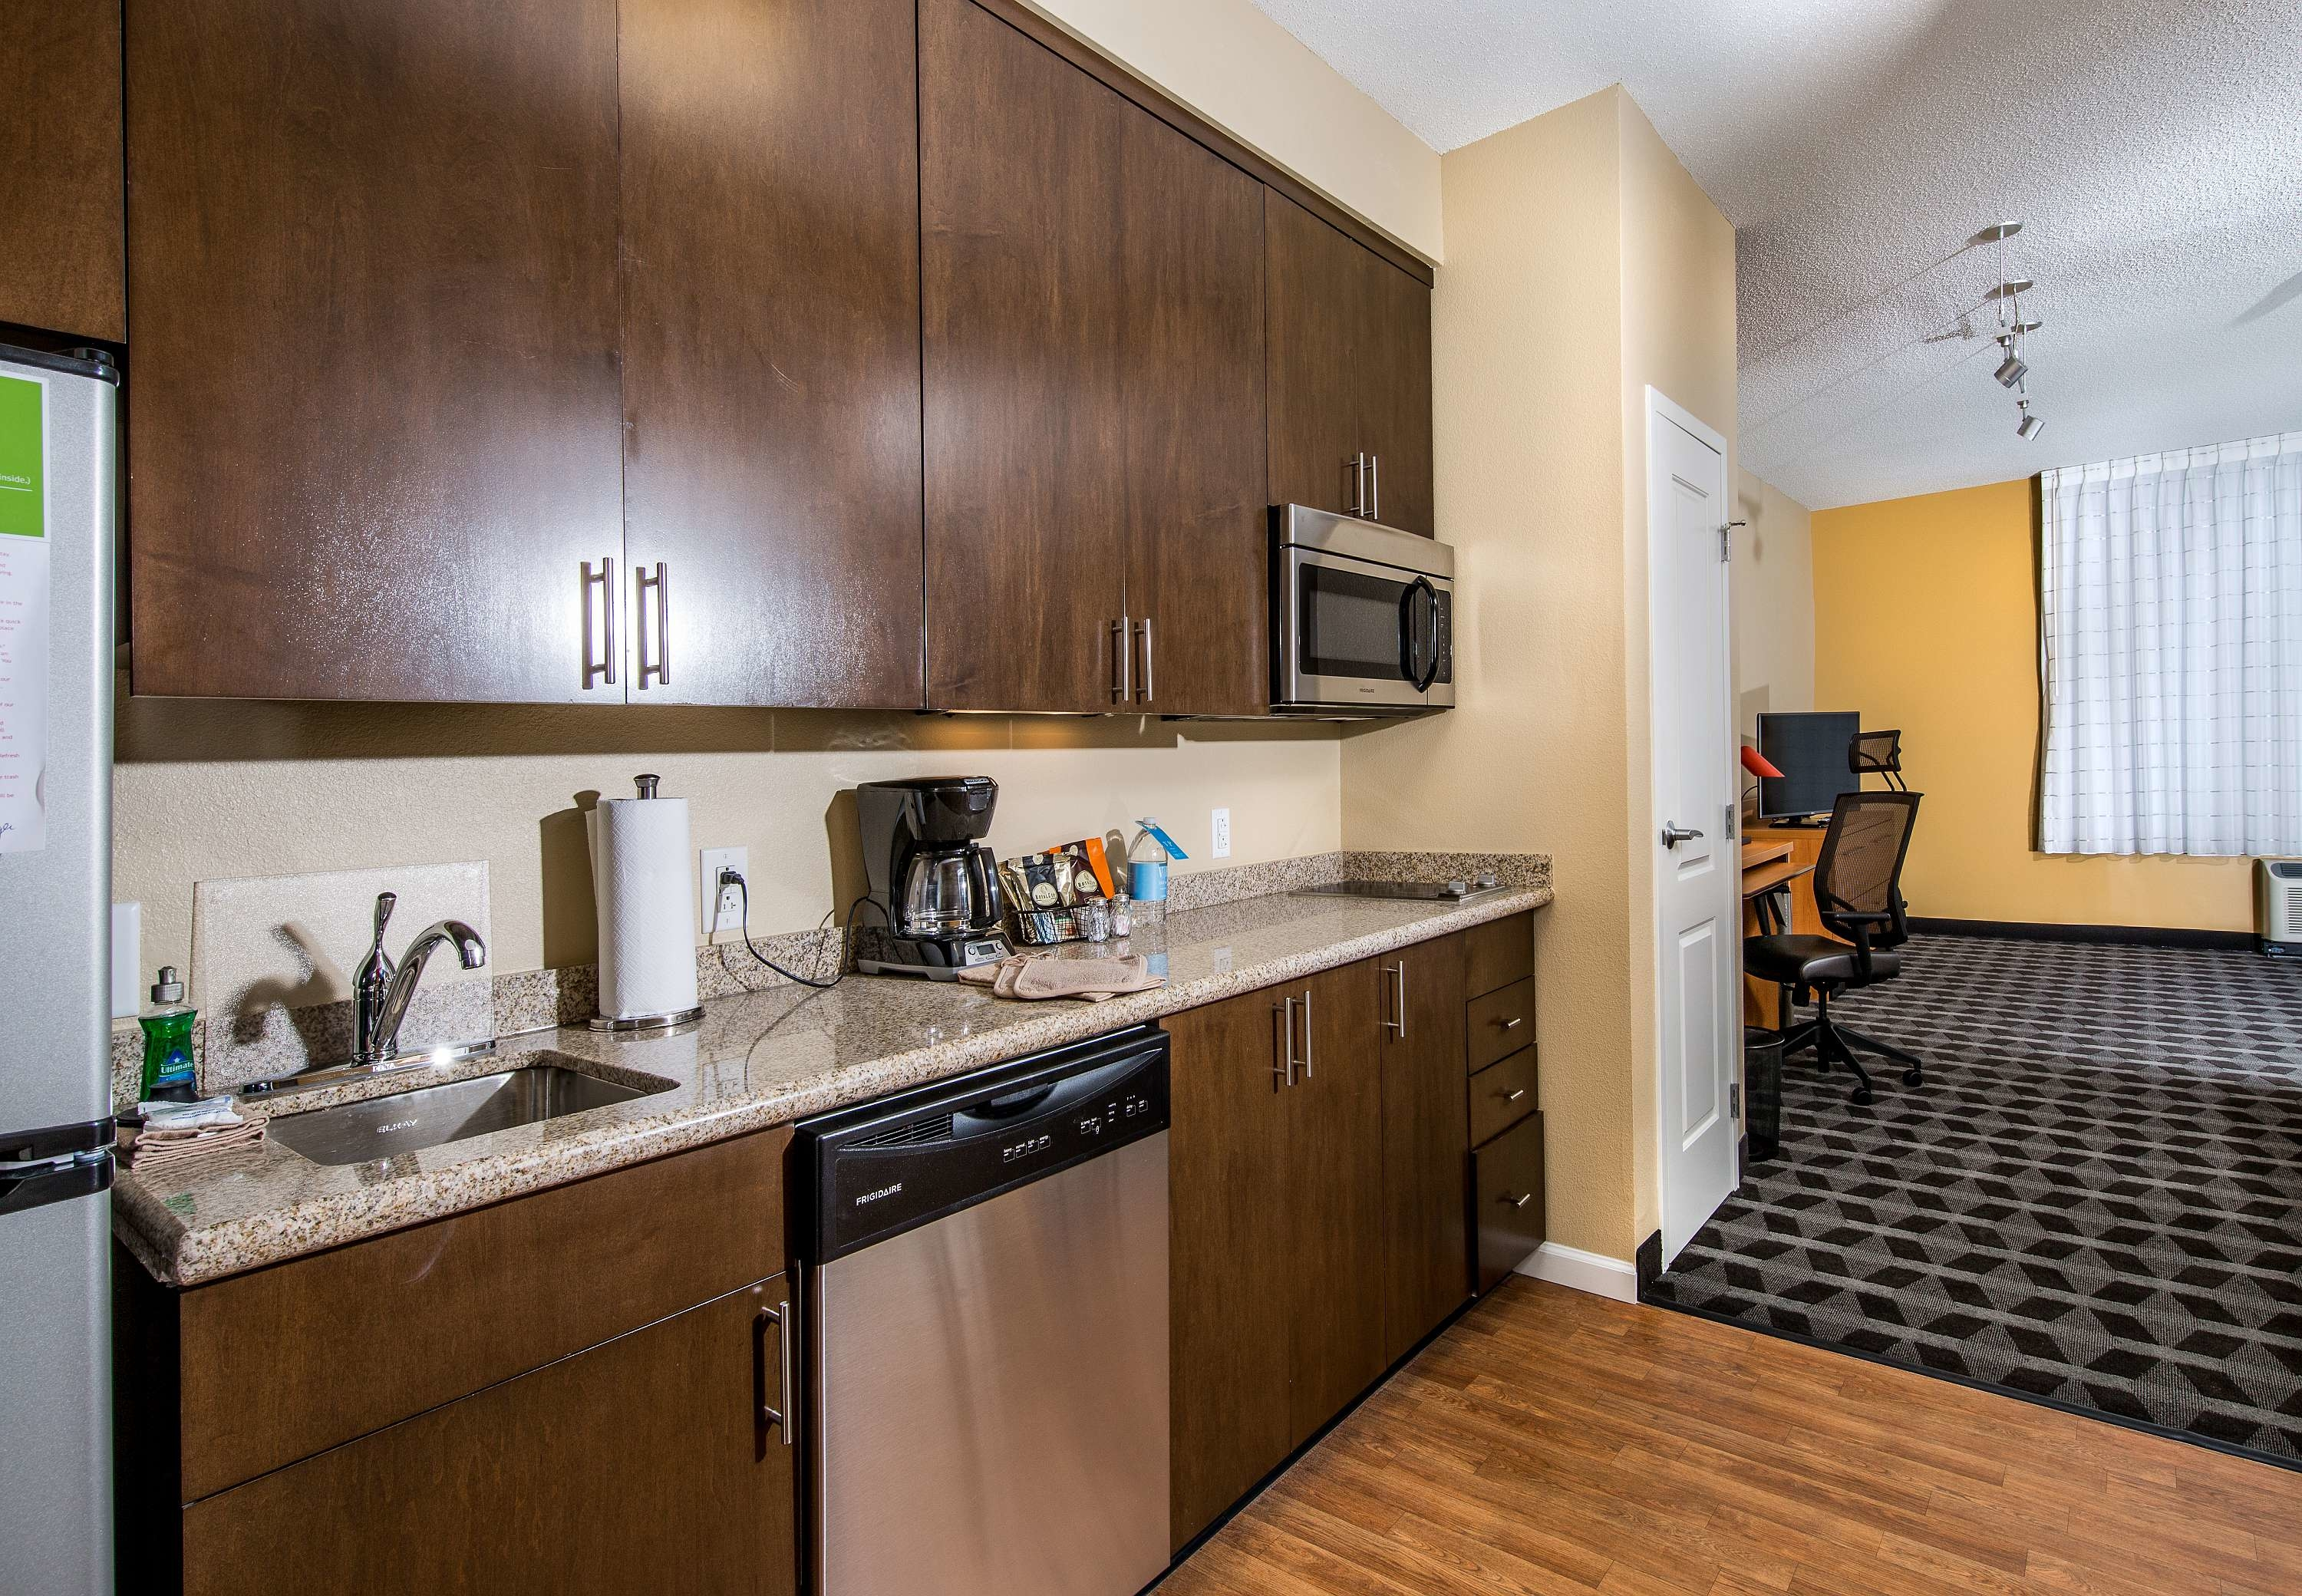 TownePlace Suites by Marriott Florence image 7